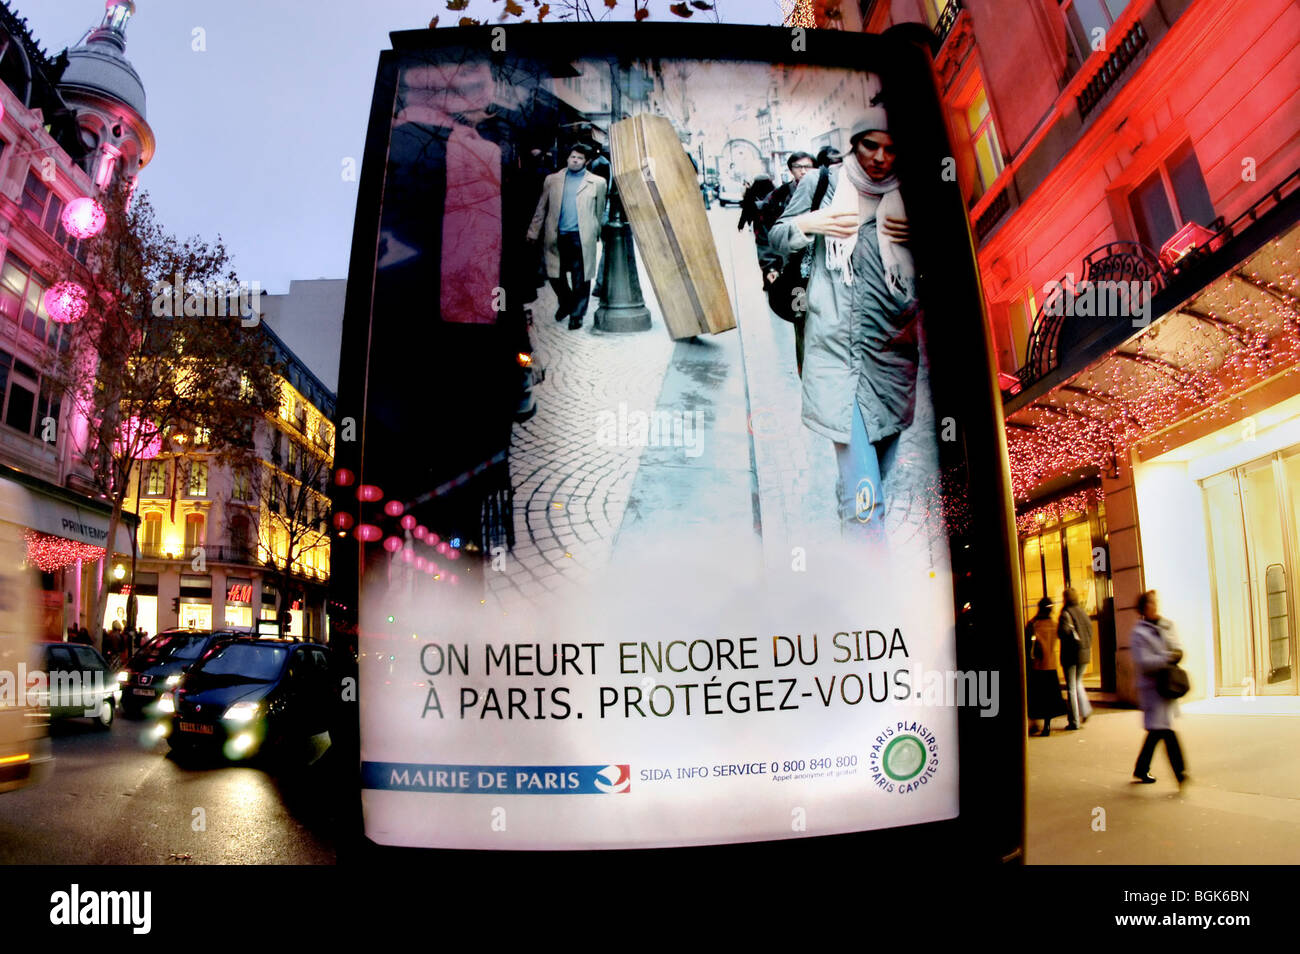 PARIS, France - Advertising Poster, health Campaign of Paris Mayor to Fight AIDS, on Street in front of Printemps - Stock Image